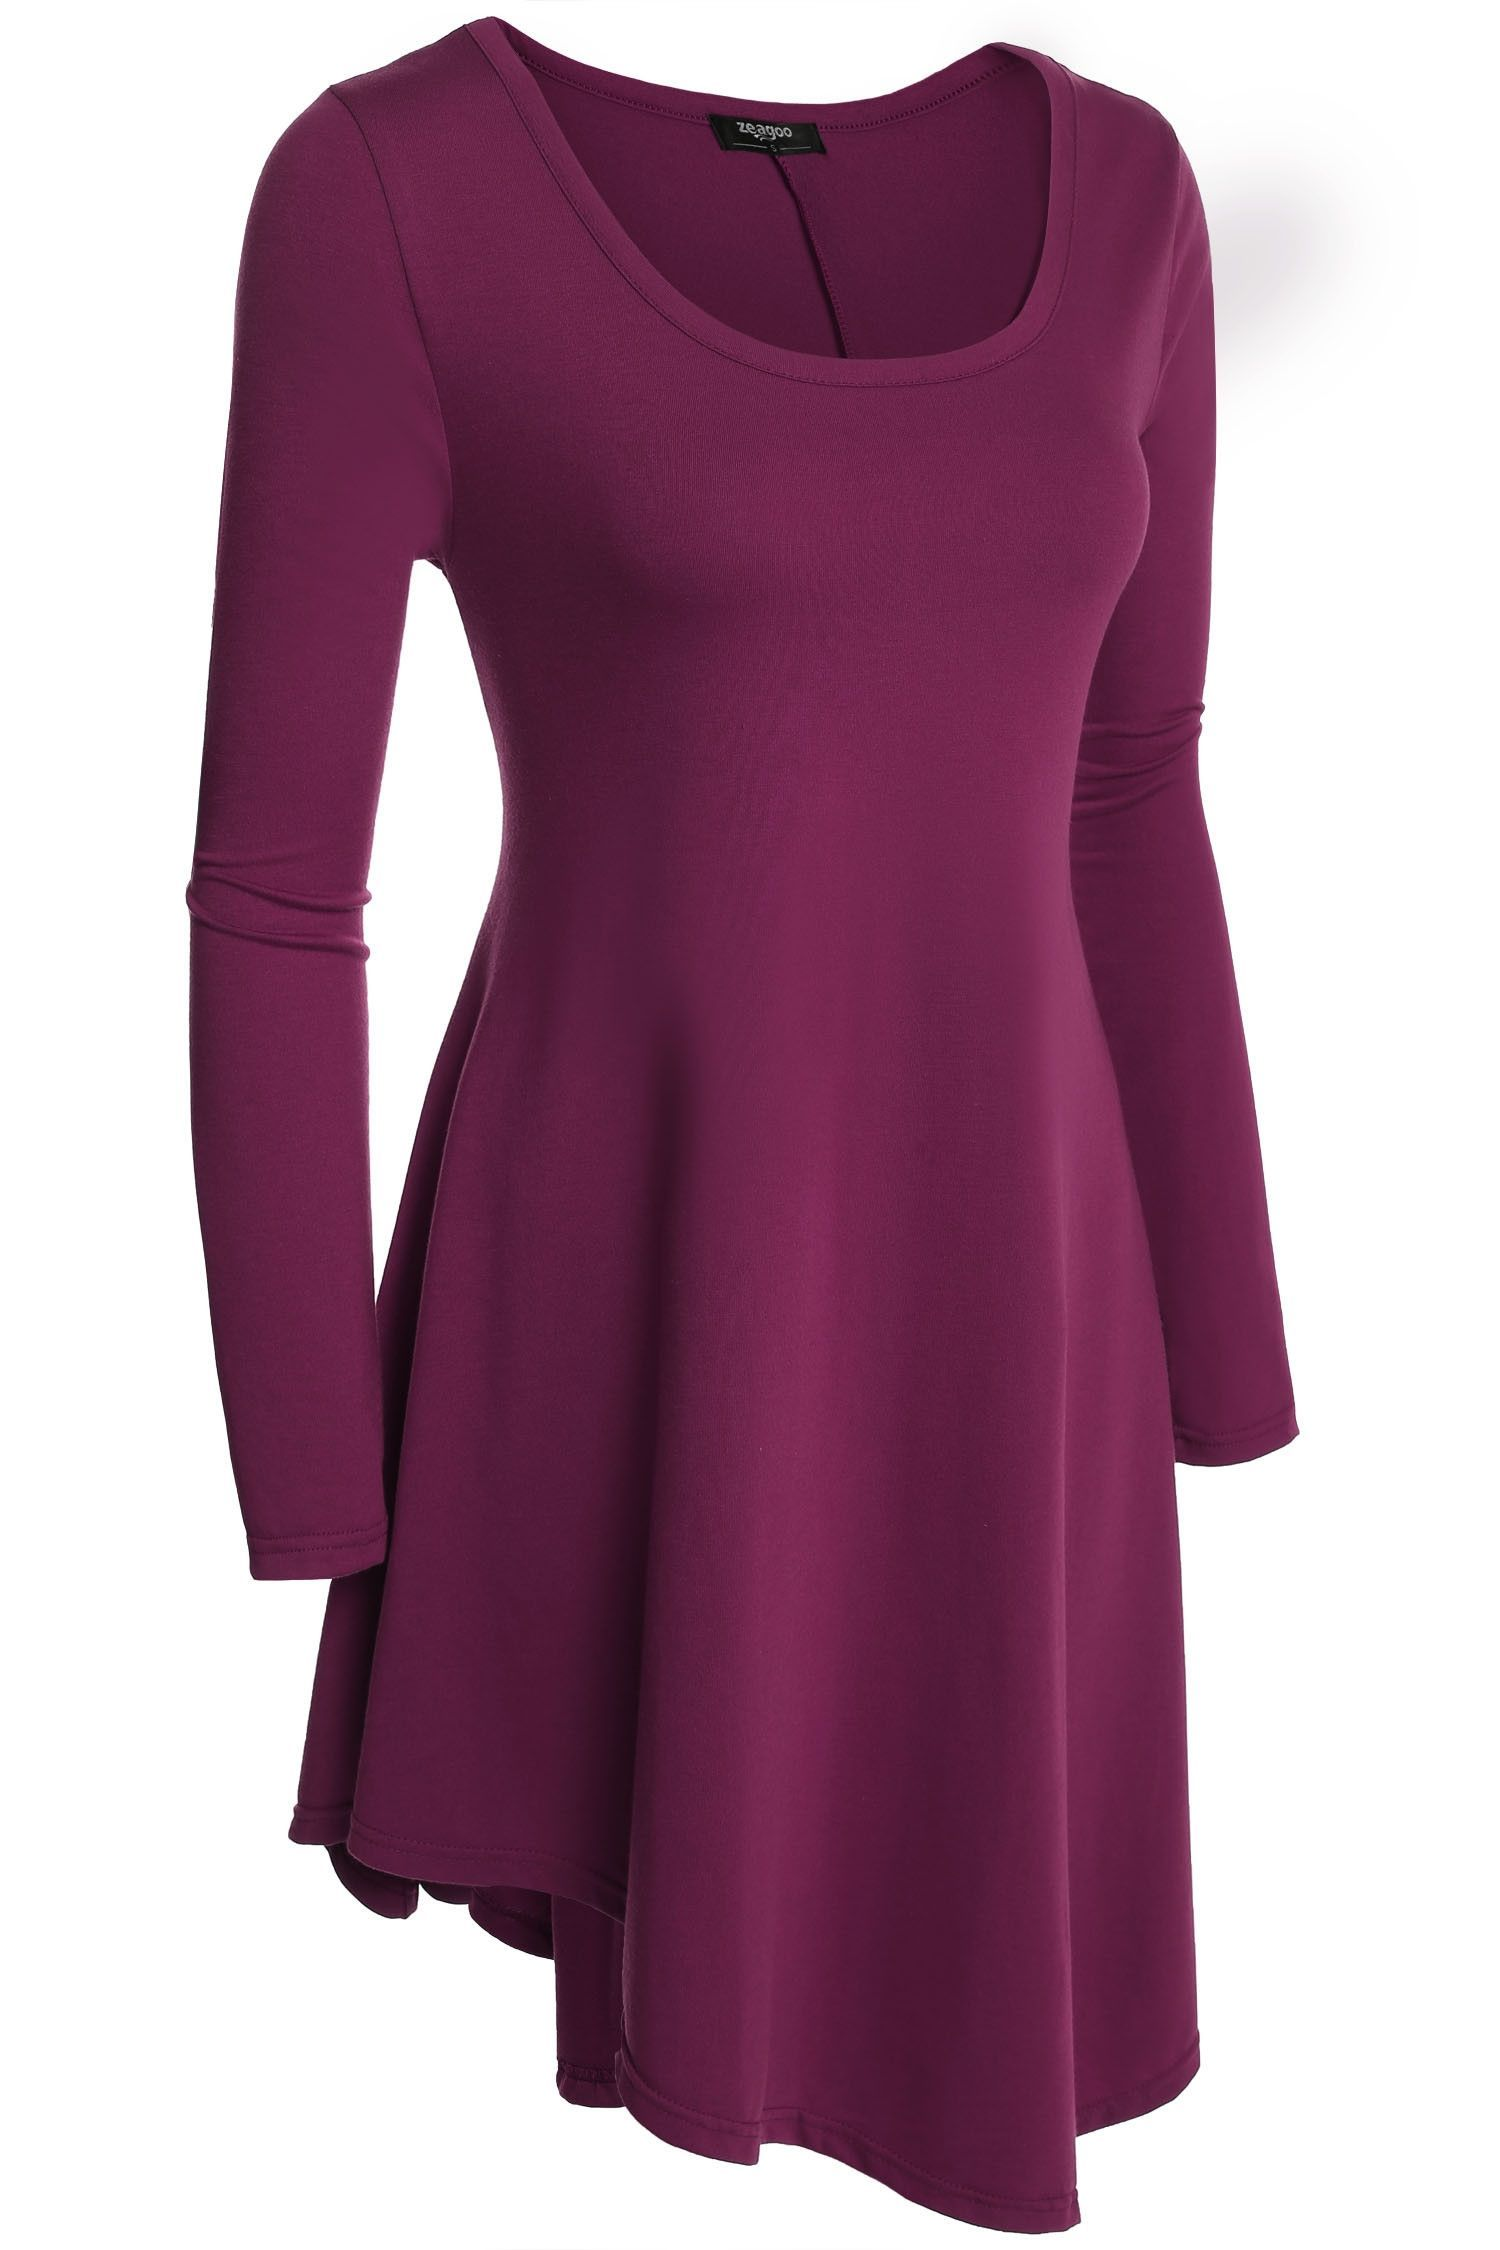 Purple O-neck Long Sleeve Loose Irregular Mini Casual Dress